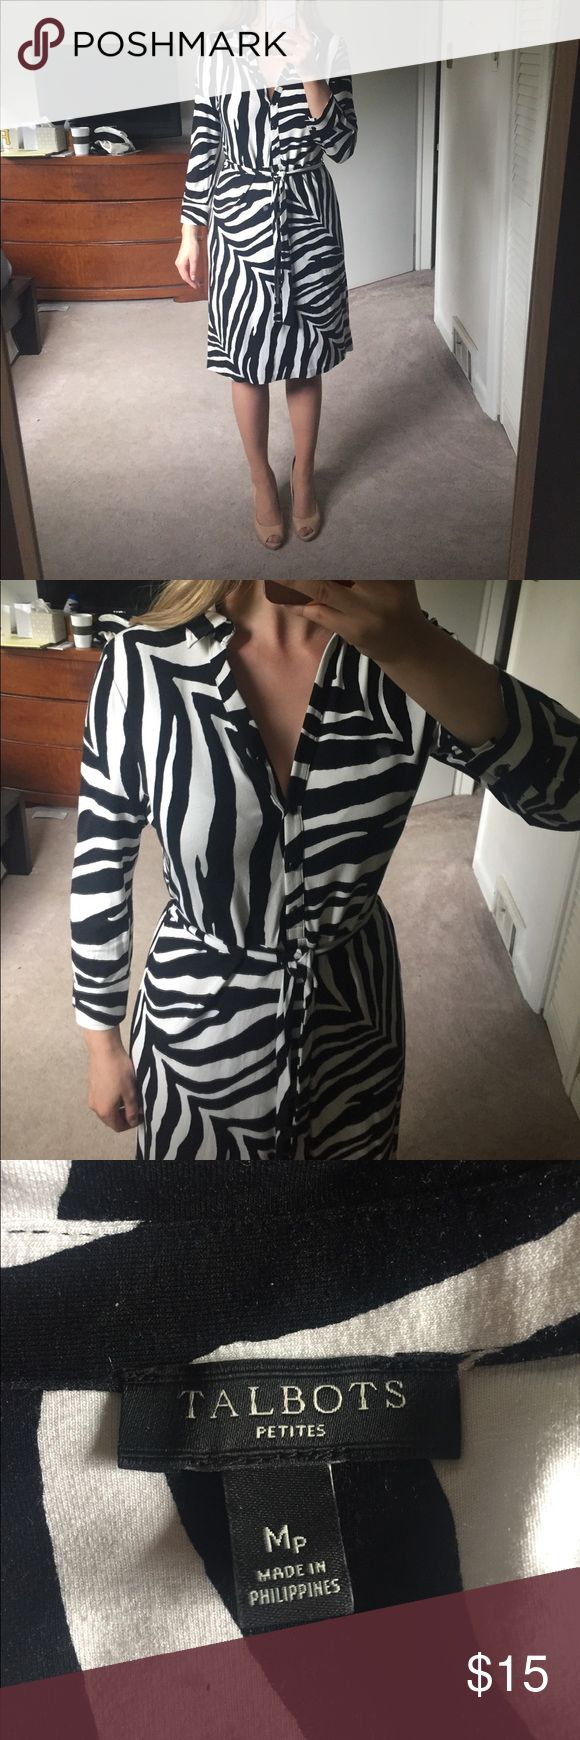 Talbots Medium Petite 3/4 sleeve Zebra Print Dress Gorgeous, bold zebra print dress. Comes to slightly past knee on 5ft 4 inch owner,  has a waist tie, buttons from waist up. Worn once, slight yellowing that is barely noticeable and is near waist. Talbots Dresses Long Sleeve